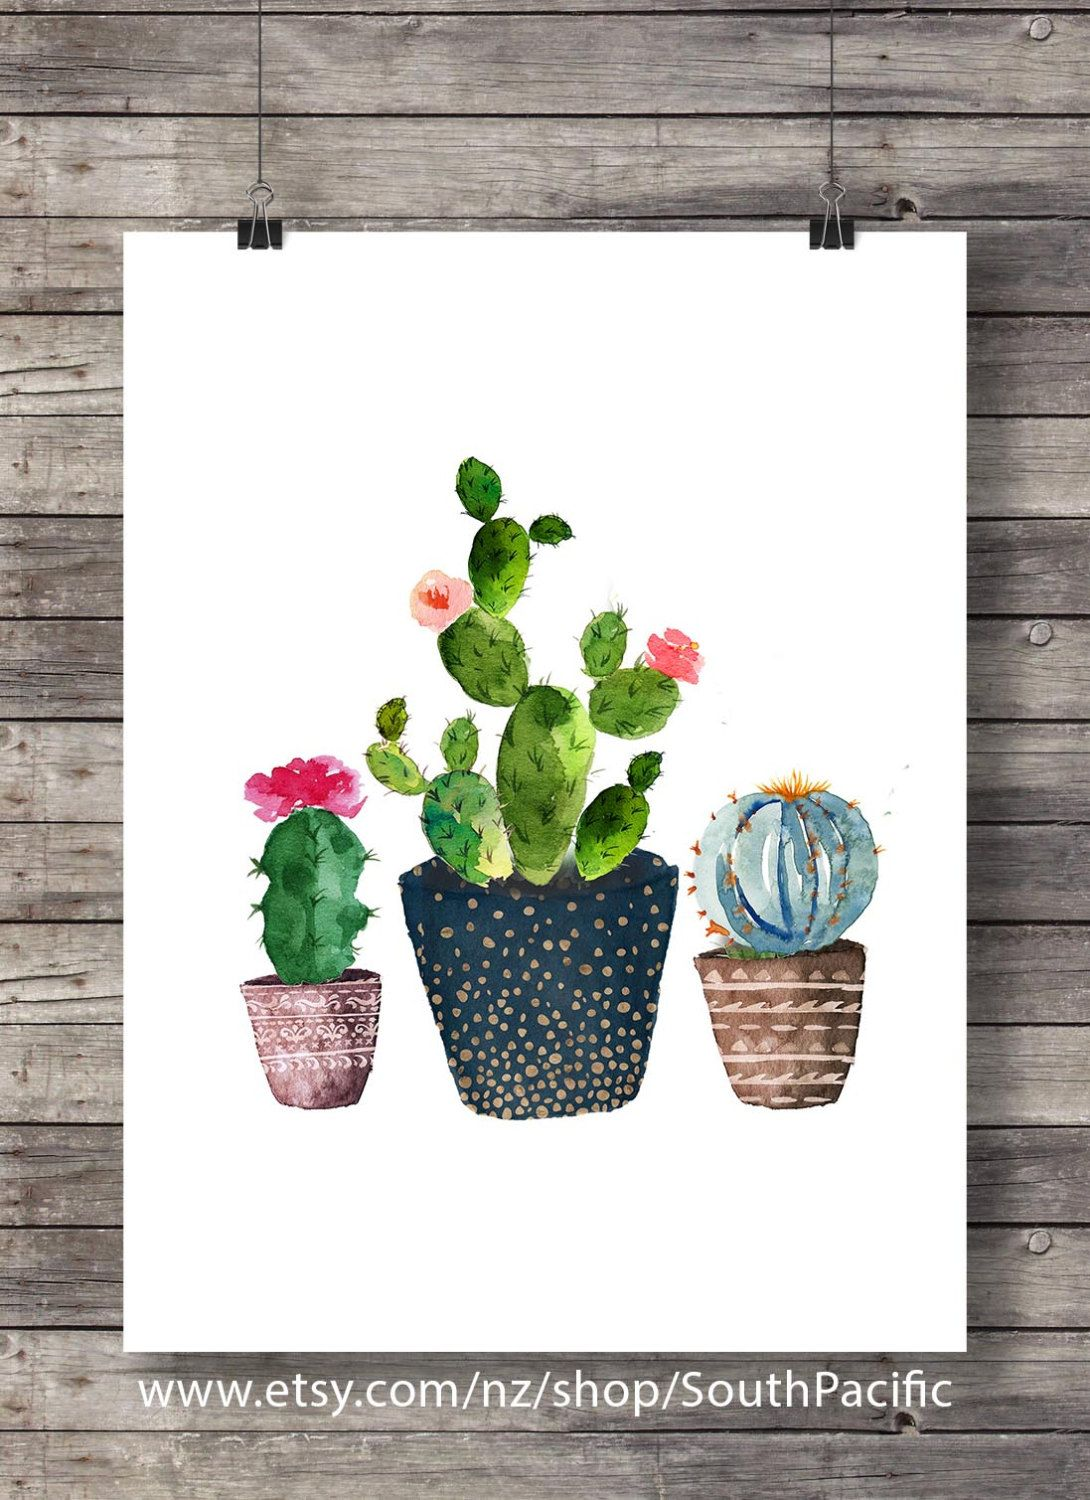 Cacti Art Print | Watercolor Cactus | Hand Painted Watercolor Cactus | Cosy  Decor Printable Wall Art 16x20 Print, Easily Reduced To 8x10.